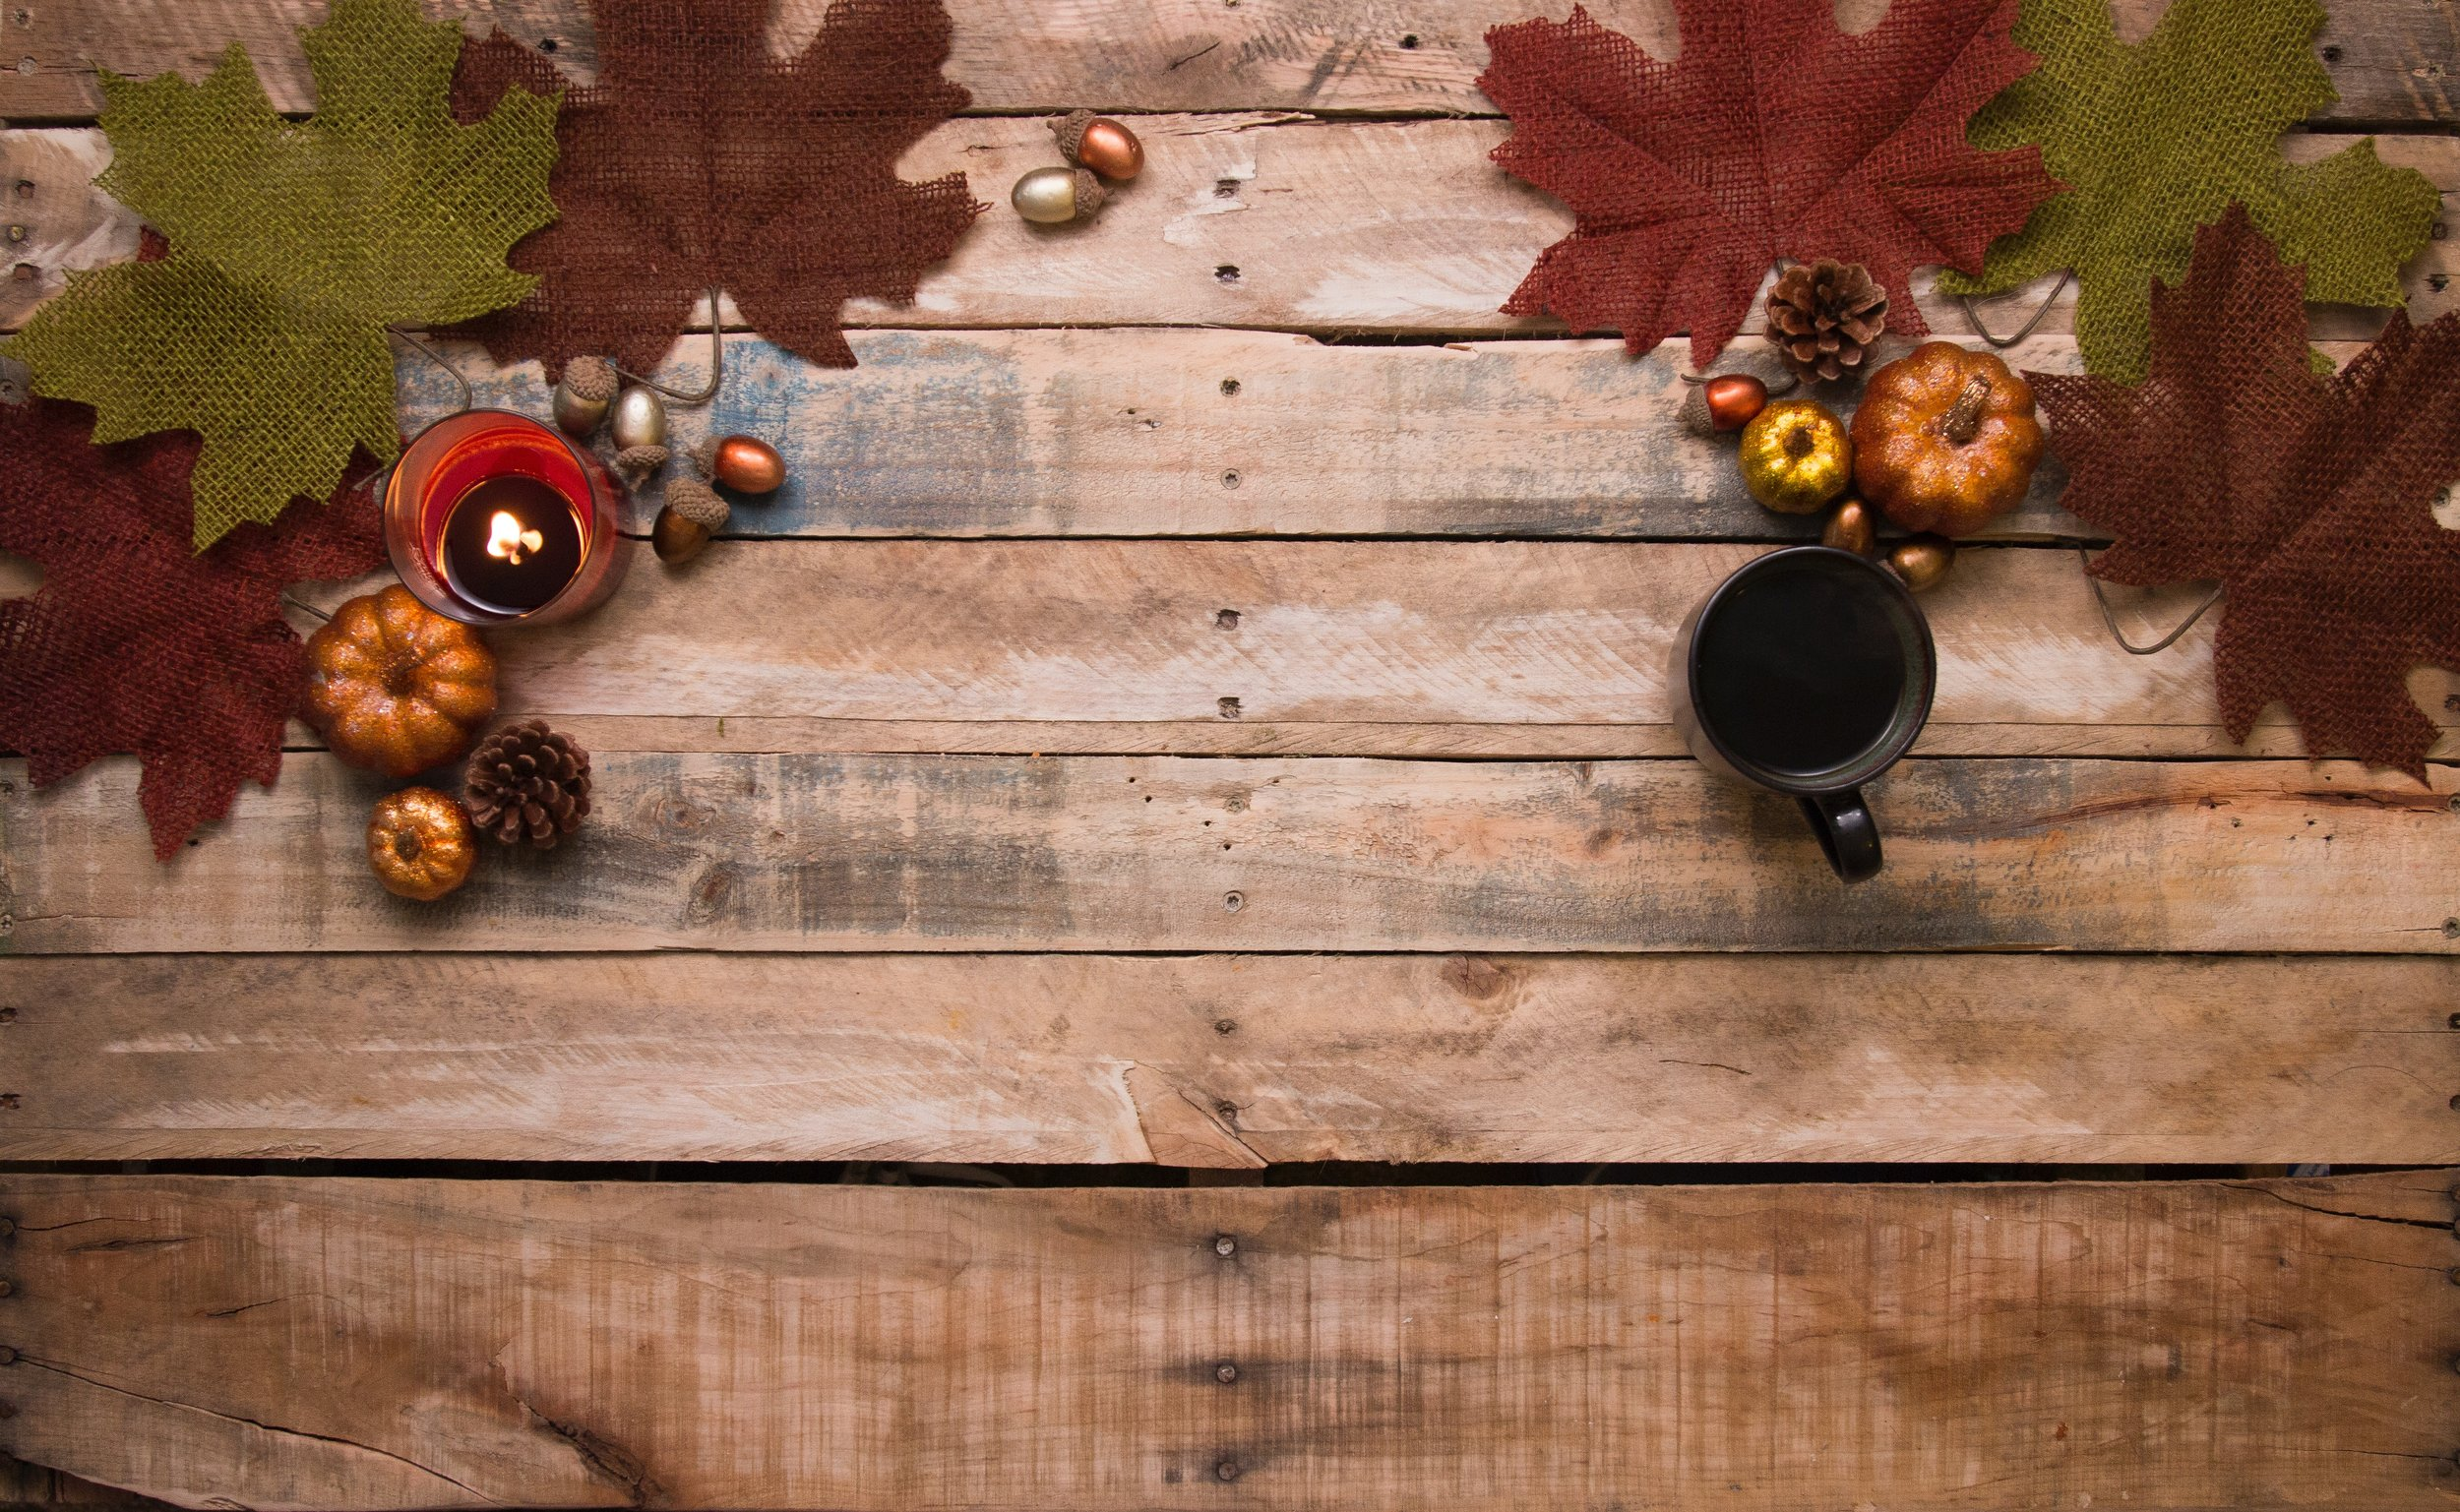 acorns-autumn-autumn-decoration-730286.jpg